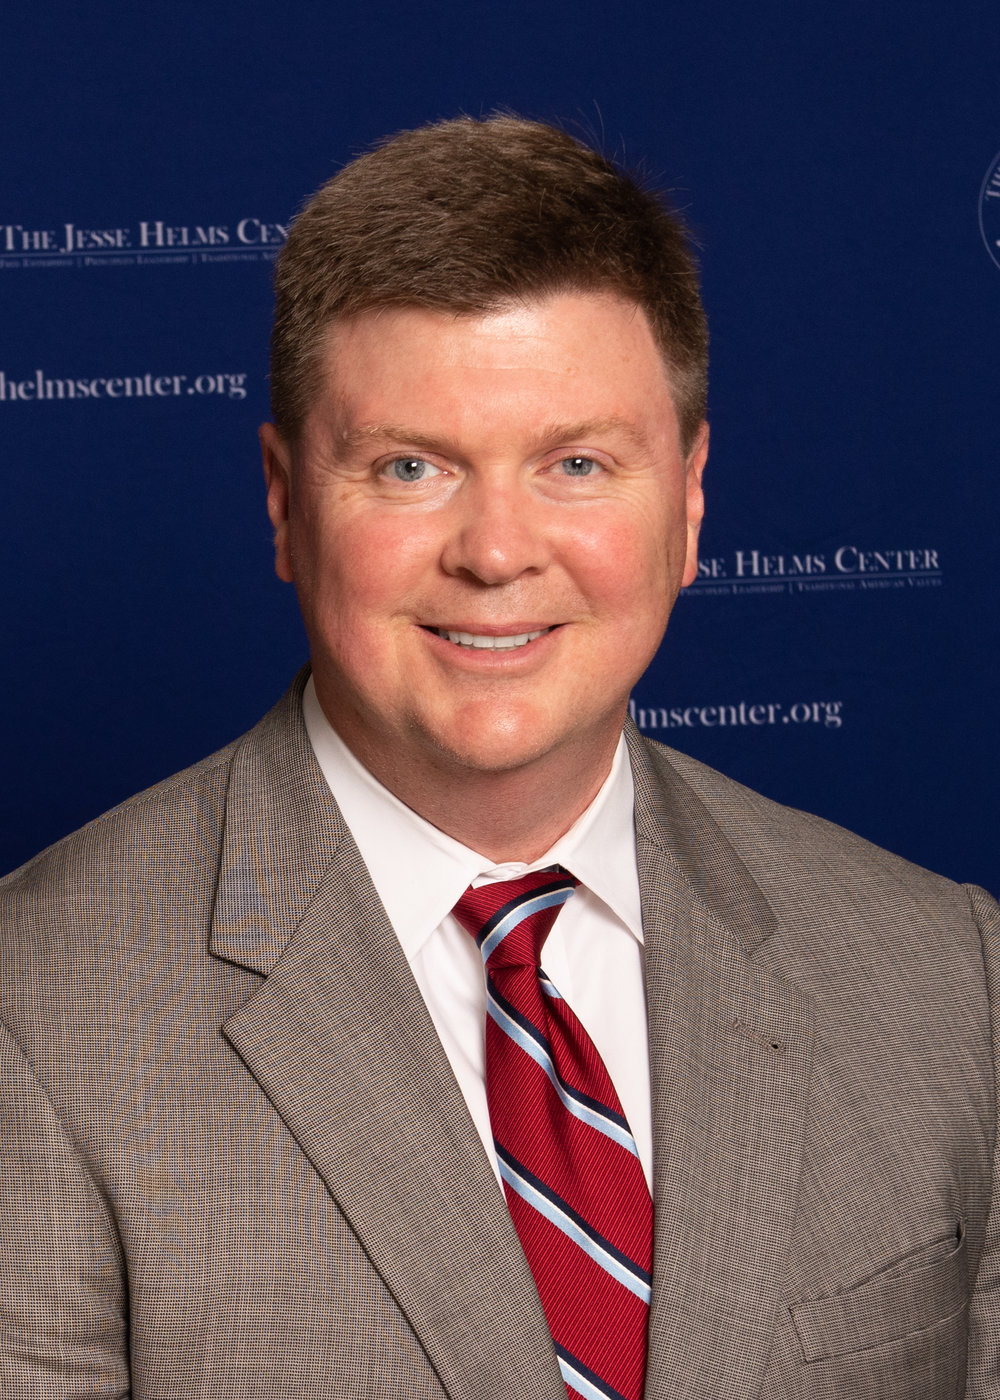 Brian Rogers   Chief Operating Officer of the Jesse Helms Center, Director of the Free Enterprise Leadership Challenge